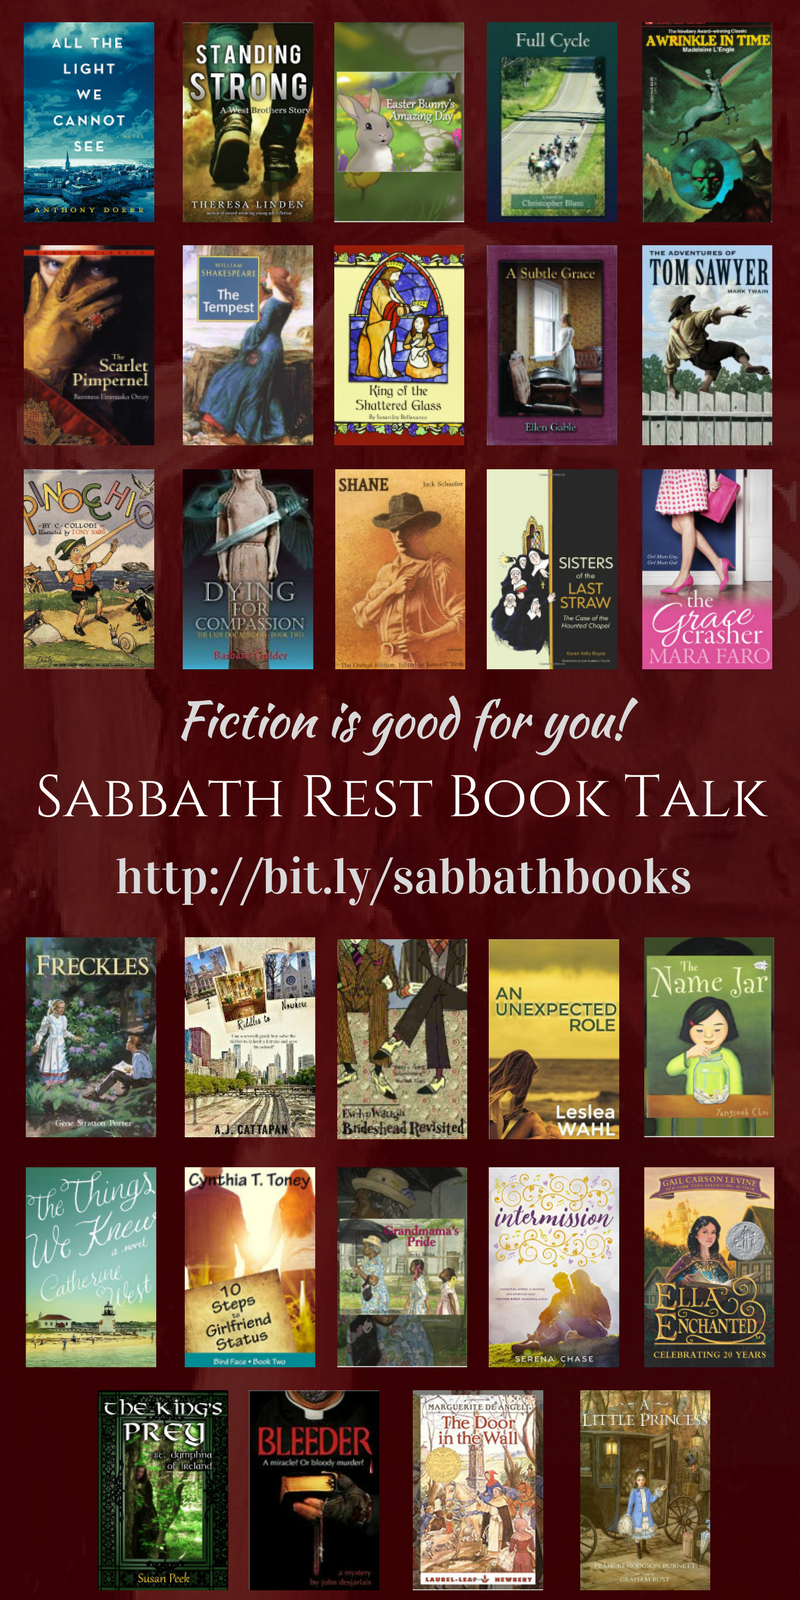 Fiction is Good for you! Watch Sabbath Rest Book Talk, and never feel guilty for reading fiction again!